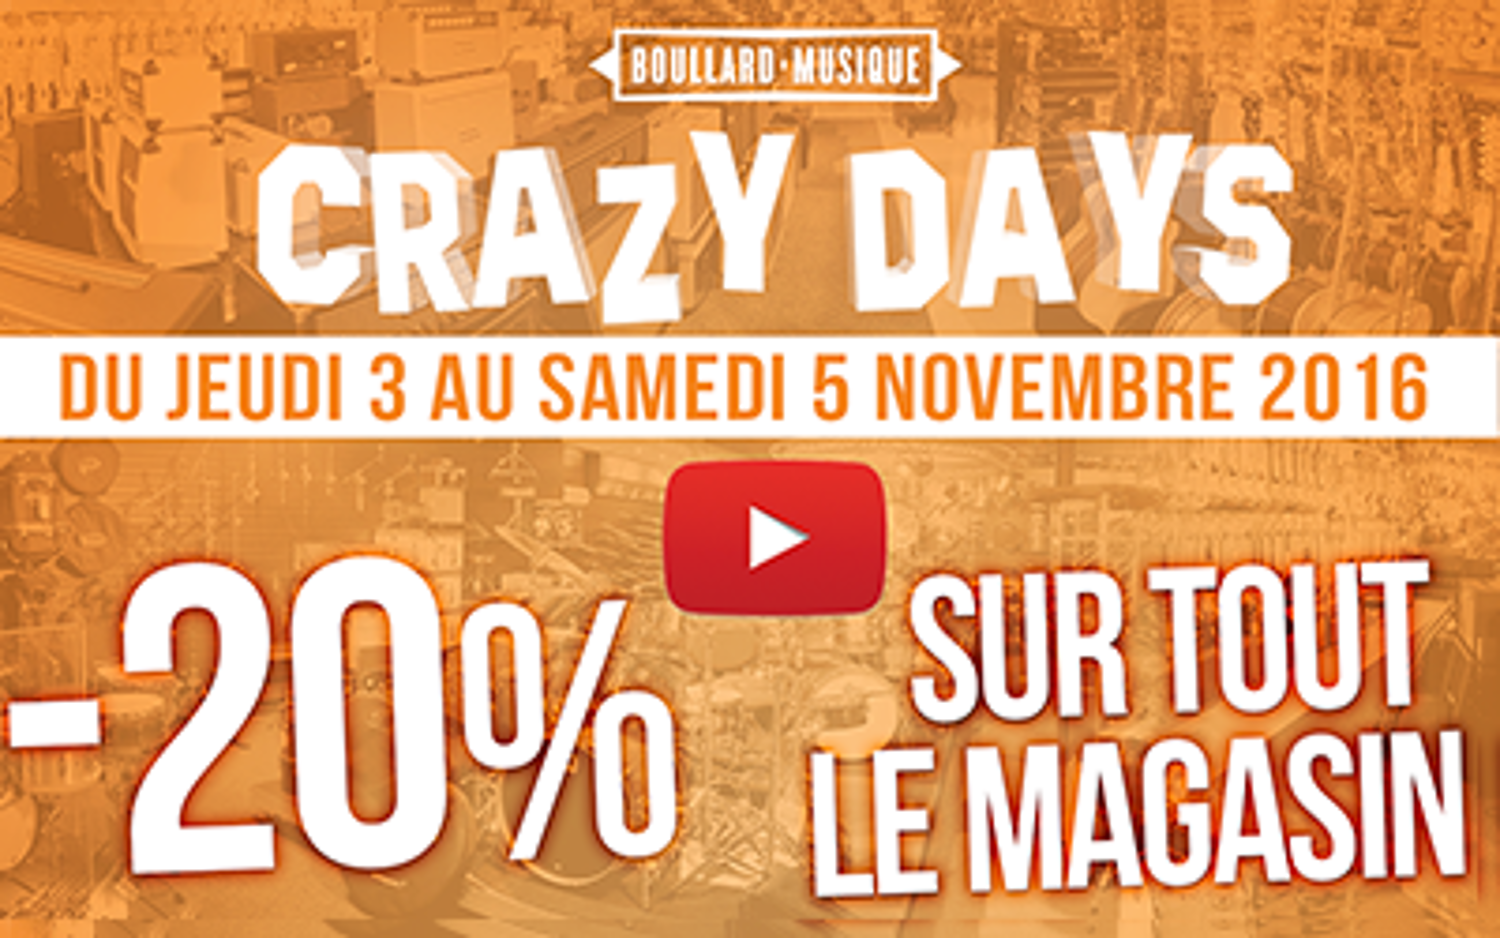 CRAZY DAYS – 20 % sur tout le magasin !